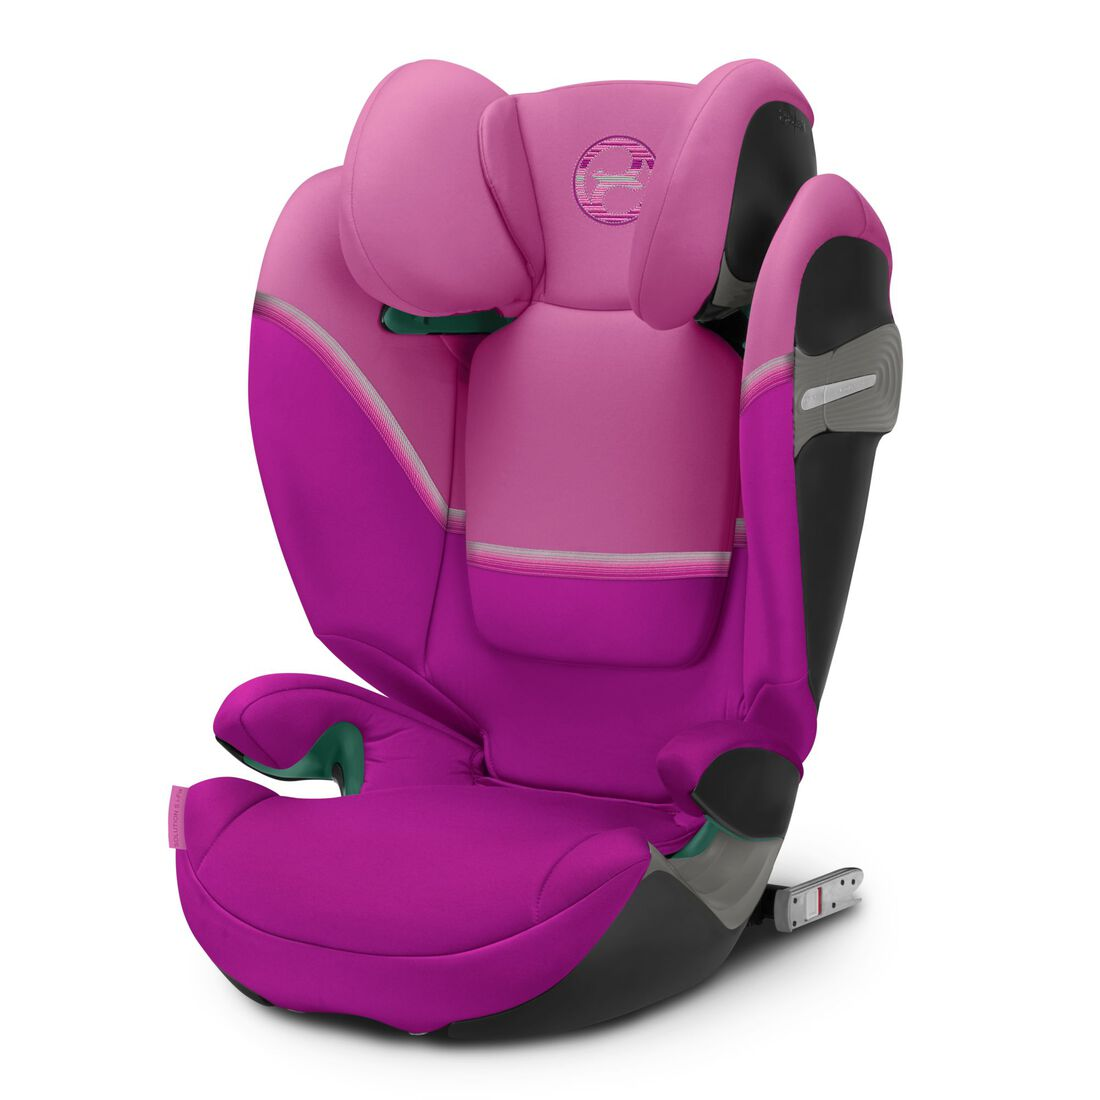 CYBEX Solution S i-Fix - Magnolia Pink in Magnolia Pink large Bild 1